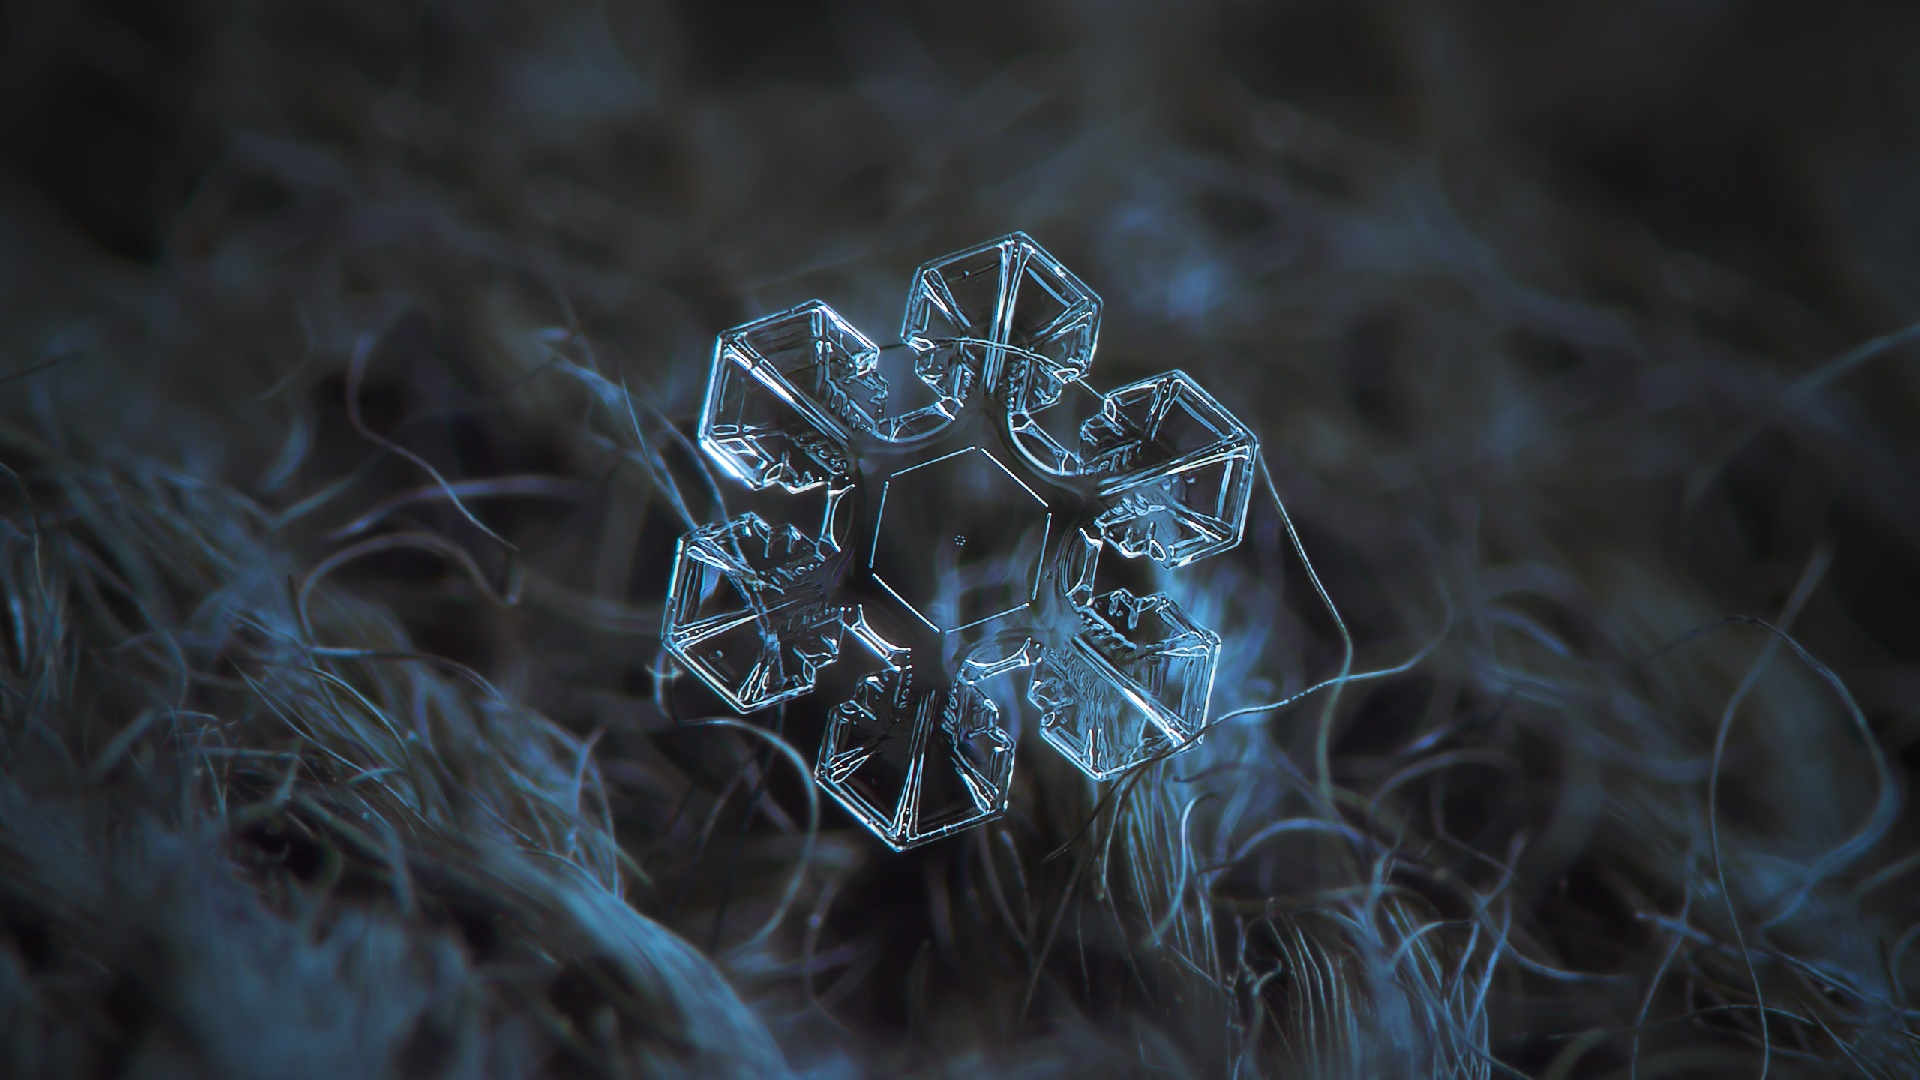 Crystal snowflake wallpaper